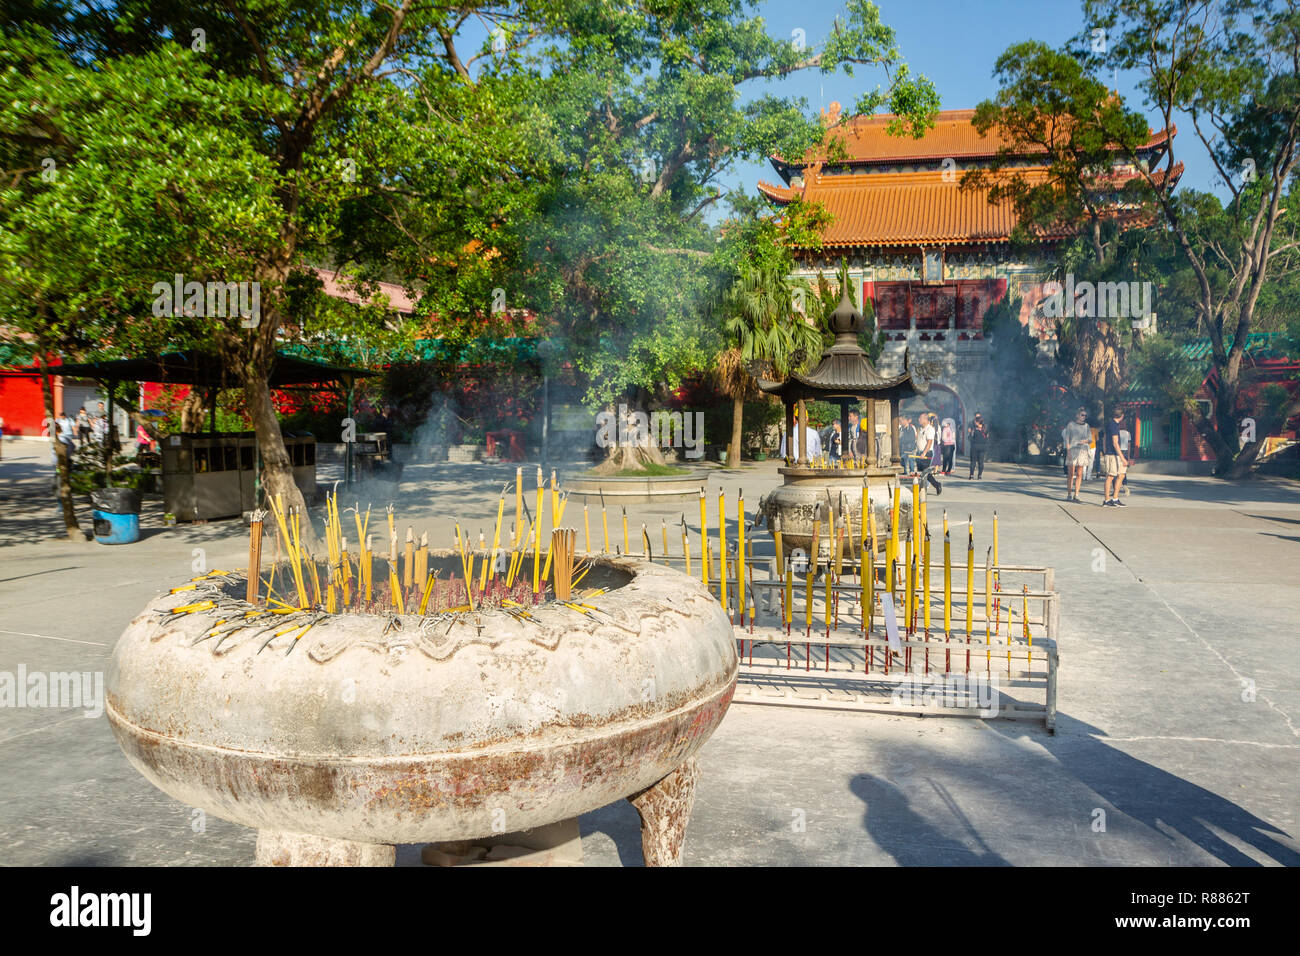 Yellow burning sticks of incense in large incense burner in front of buddhist temple at Po Lin Monastery, Lantau Island, Hong Kong, China. - Stock Image